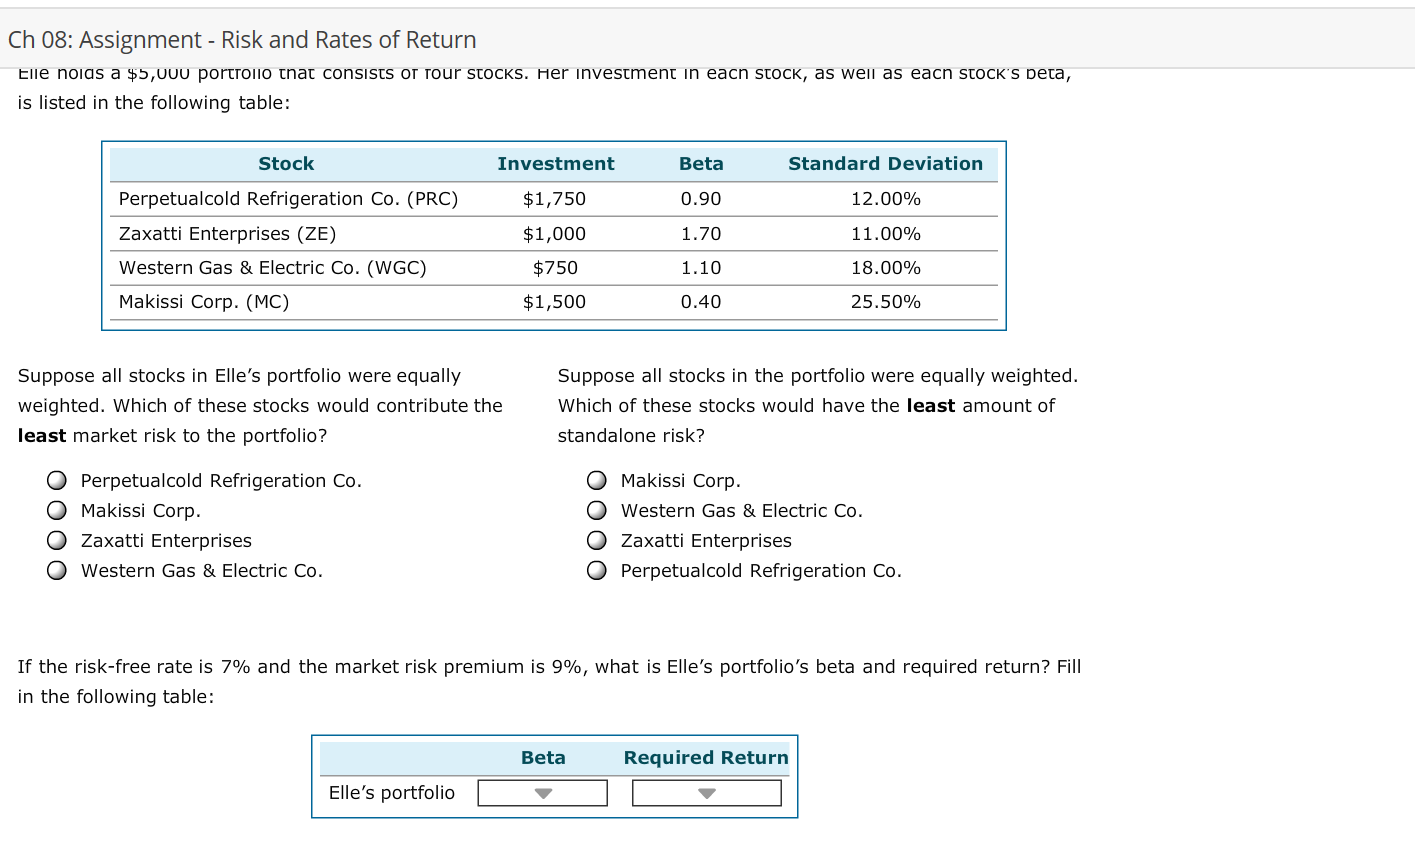 Ch 08: Assignment - Risk and Rates of Return Elle nolas a $5,000 portrollo that consists or rOur stocKs. Her investment in eacn stock, as well as each stock's beta, is listed in the following table: Standard Deviation Stock Investment Beta Perpetualcold Refrigeration Co. (PRC) $1,750 0.90 12.00% Zaxatti Enterprises (ZE) 1.70 $1,000 11.00% Western Gas & Electric Co. (WGC) $750 1.10 18.00% Makissi Corp. (MC) $1,500 0.40 25.50% Suppose all stocks in the portfolio were equally weighted Suppose all stocks in Elle's portfolio were equally weighted. Which of these stocks would contribute the Which of these stocks would have the least amount of least market risk to the portfolio? standalone risk? Makissi Corp. Perpetualcold Refrigeration Co. Makissi Corp. Western Gas & Electric Co. Zaxatti Enterprises Zaxatti Enterprises Western Gas & Electric Co O Perpetualcold Refrigeration Co. If the risk-free rate is 7% and the market risk premium is 9%, what is Elle's portfolio's beta and required return? Fill in the following table: Required Return Beta Elle's portfolio O O O O